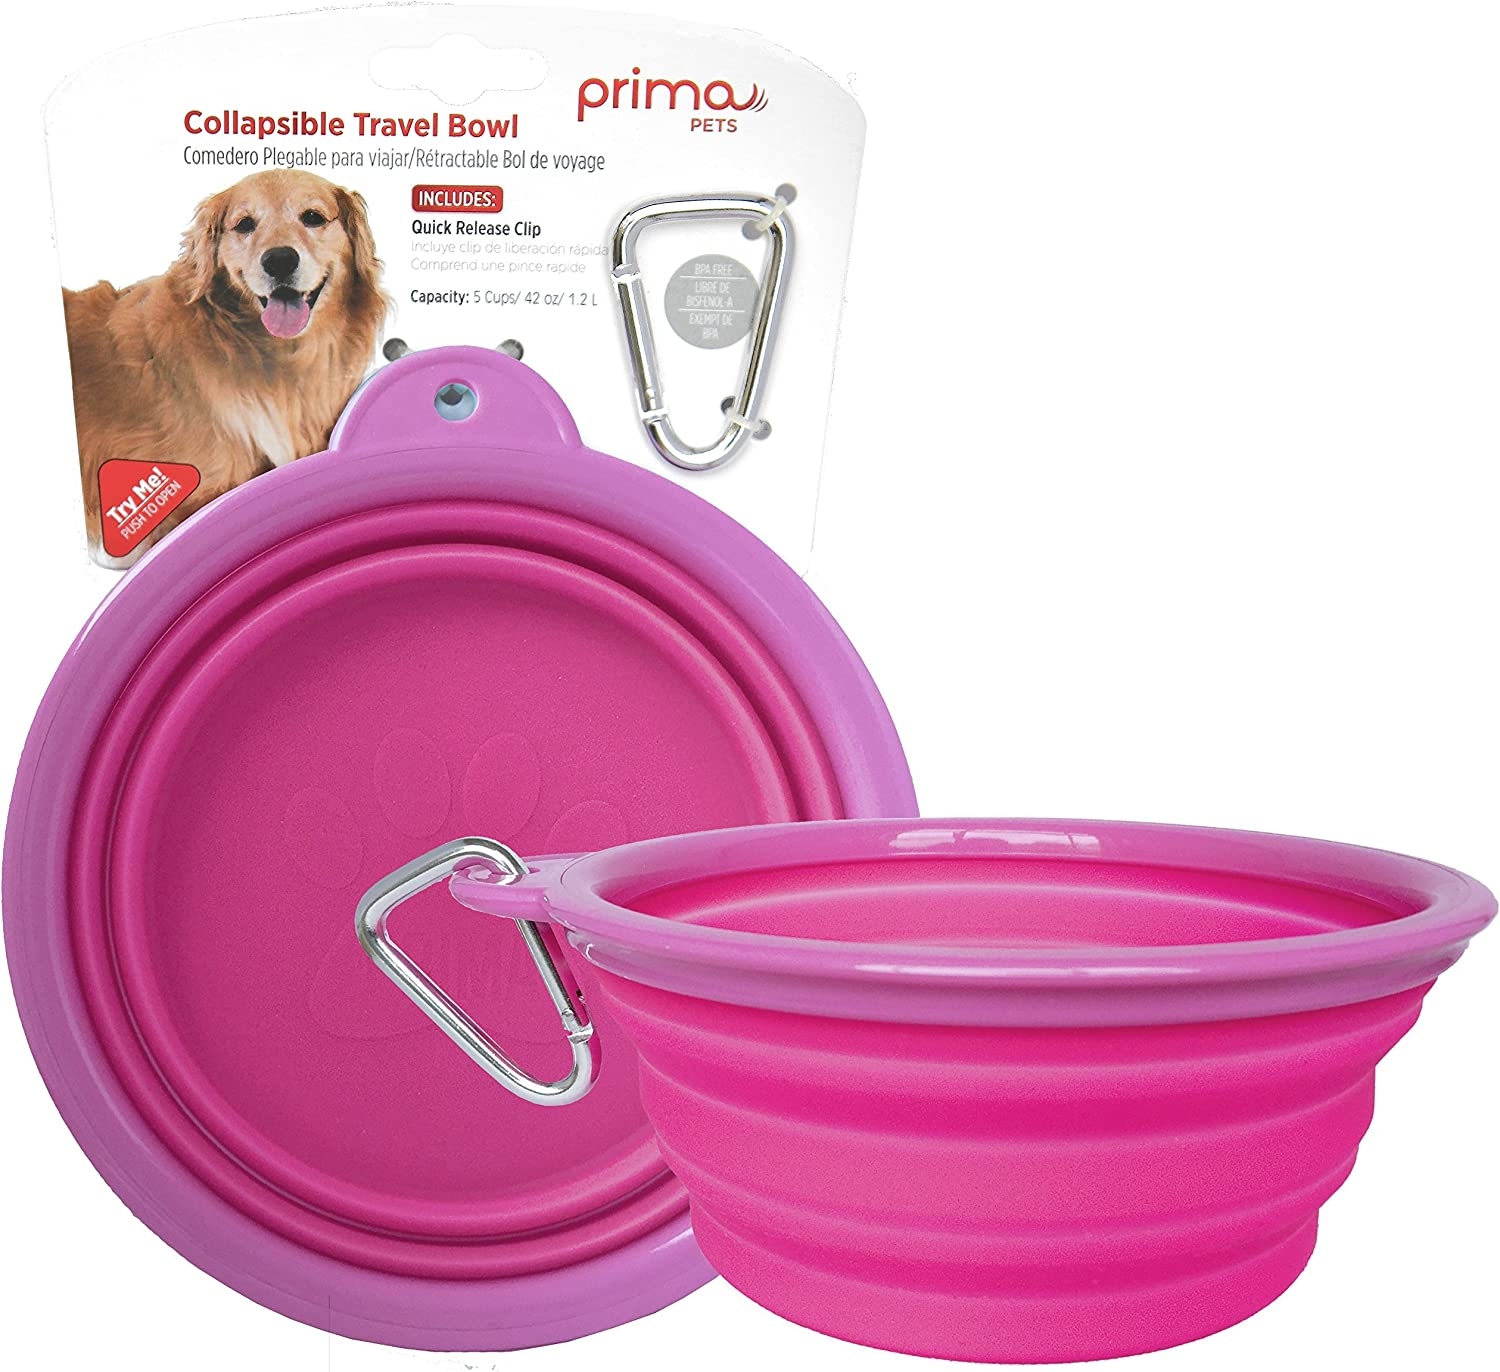 Prima Pets Collapsible Silicone Food & Water Travel Bowl with Clip for Dog and Cat, Small (1.5 Cups) & Large (5 Cups)